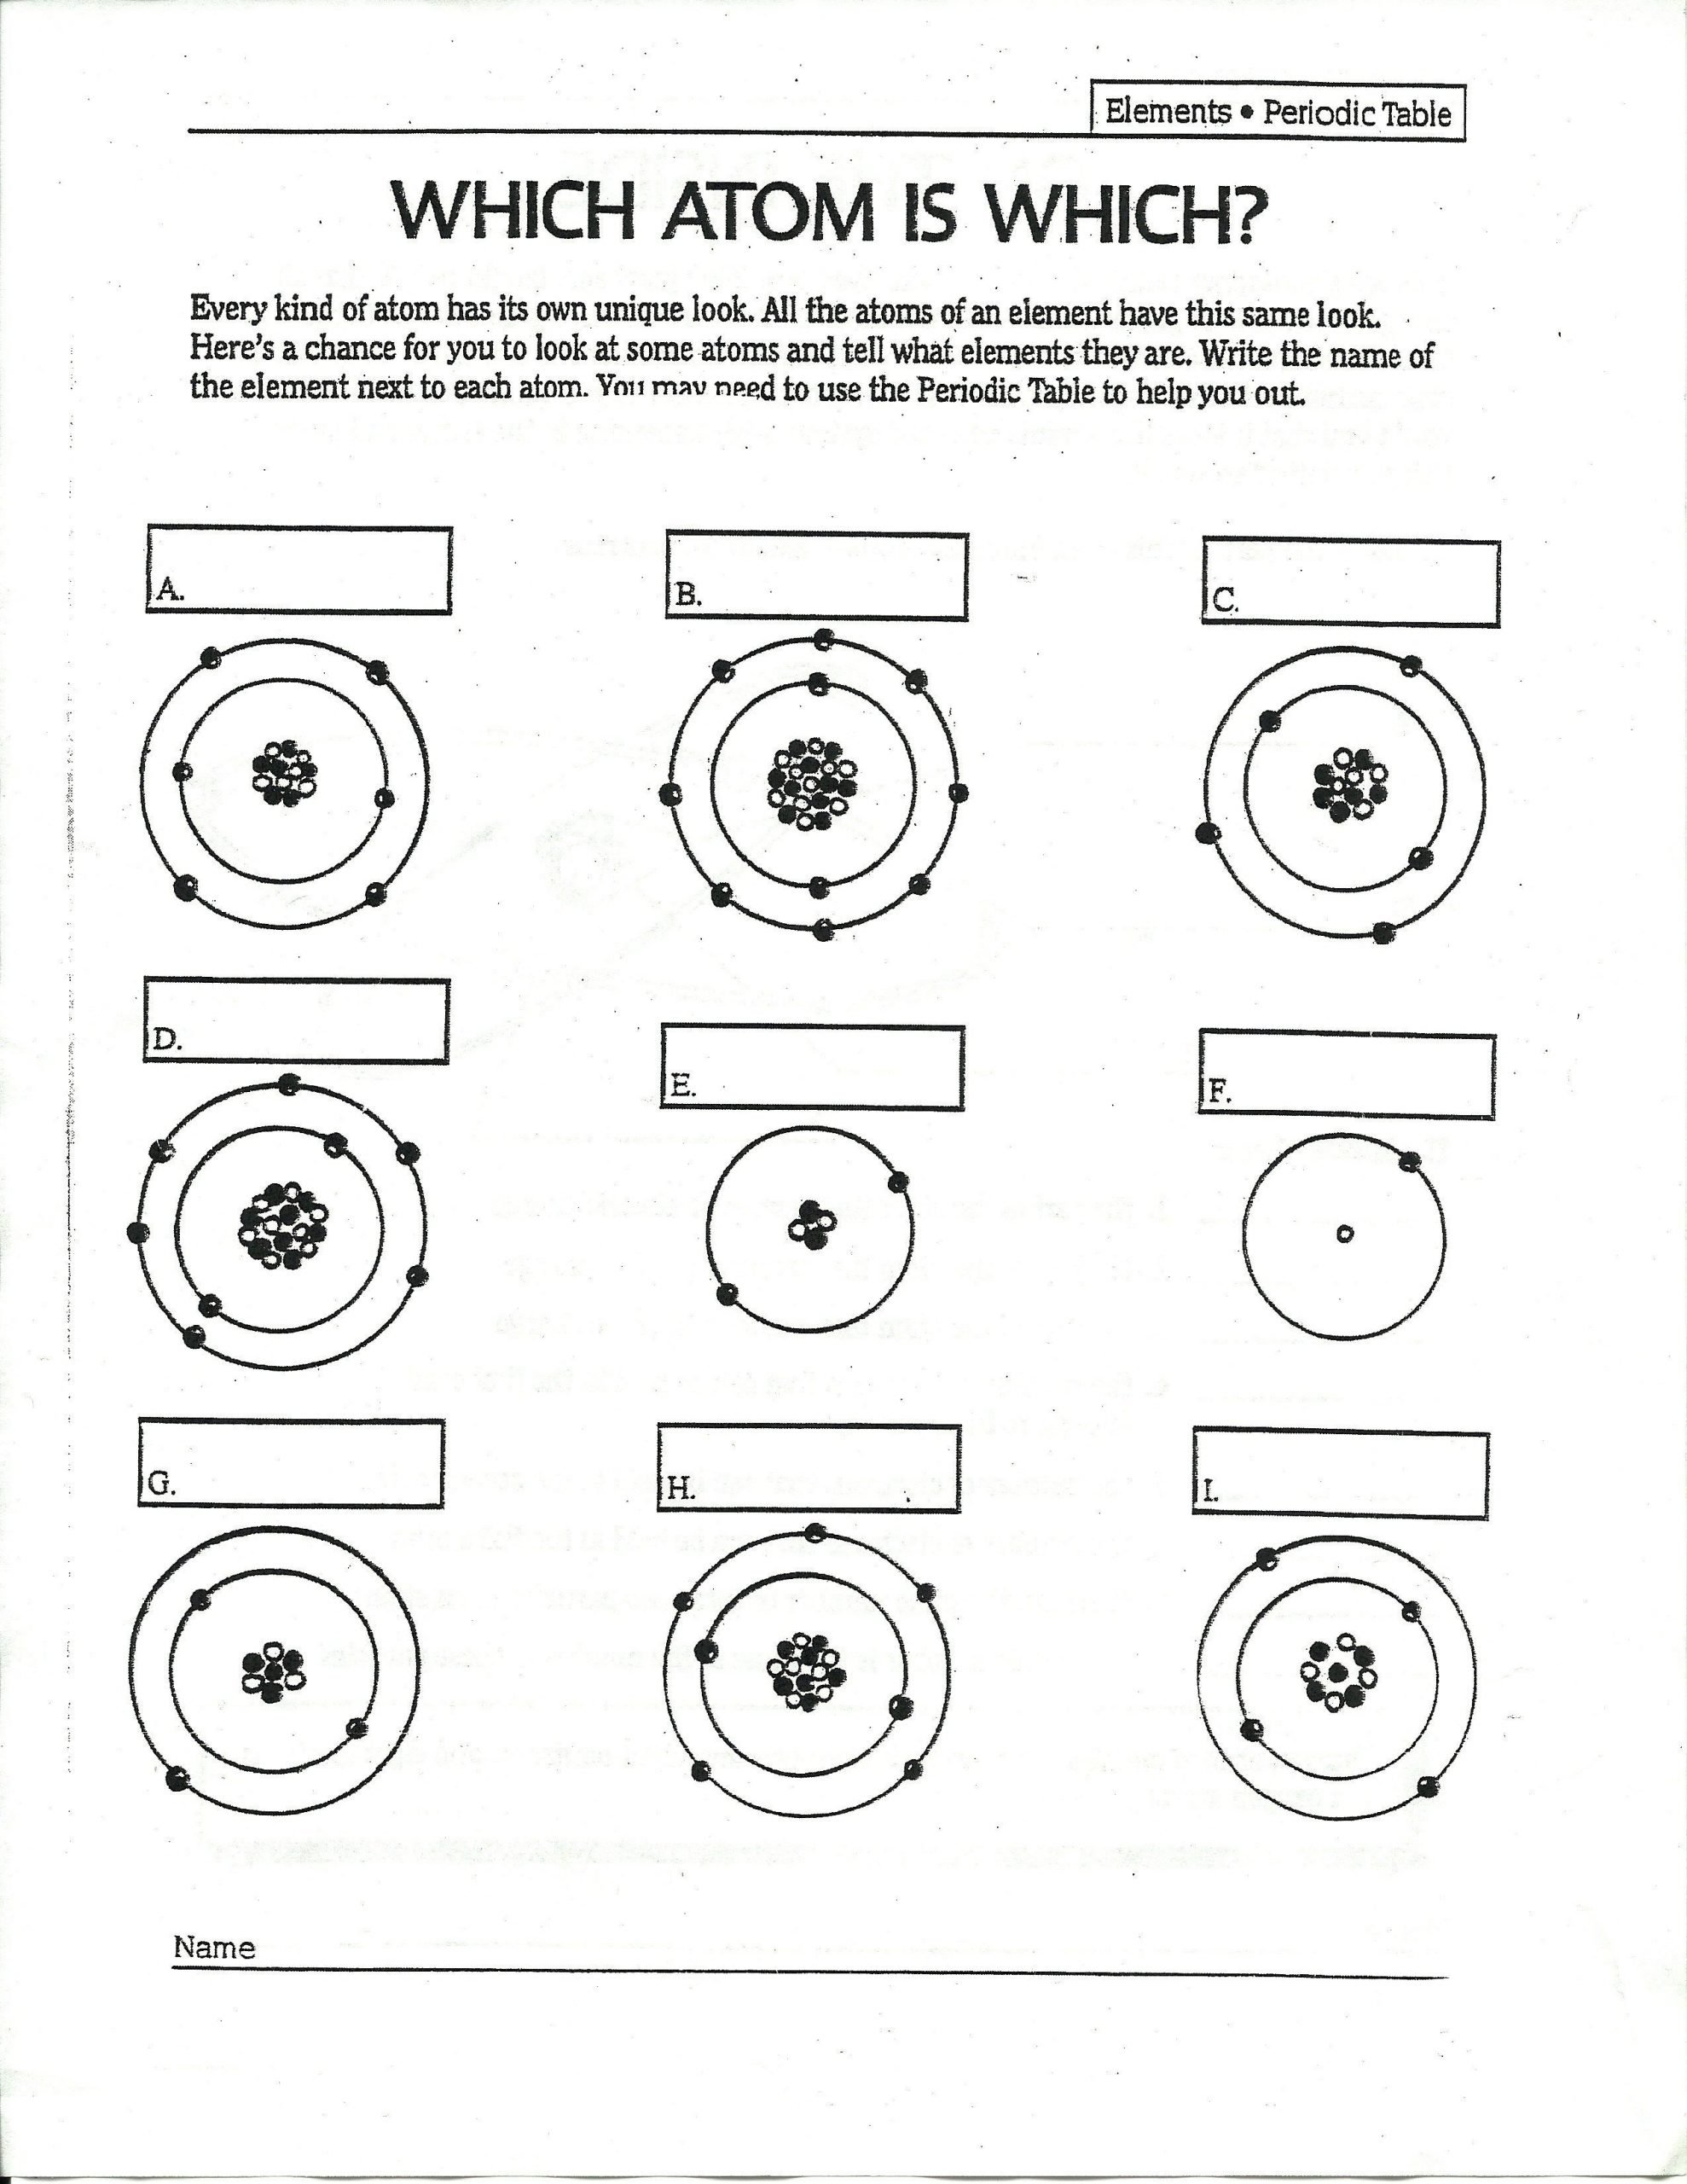 Middle School Periodic Table Worksheet Answers to Drawing atoms Worksheet Answers to Drawing